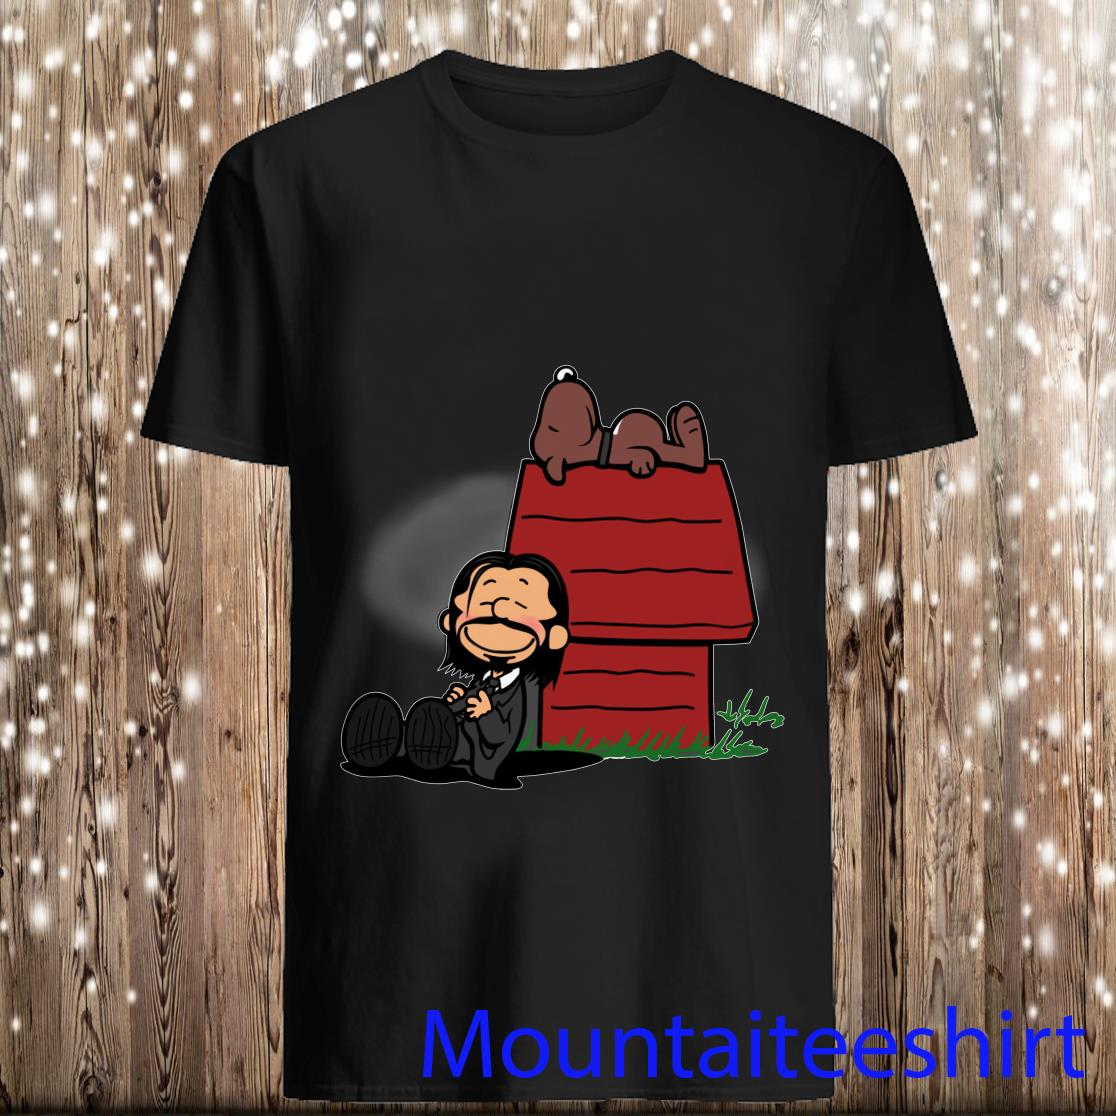 John Wick and Snoopy in the style of Peanuts Shirt